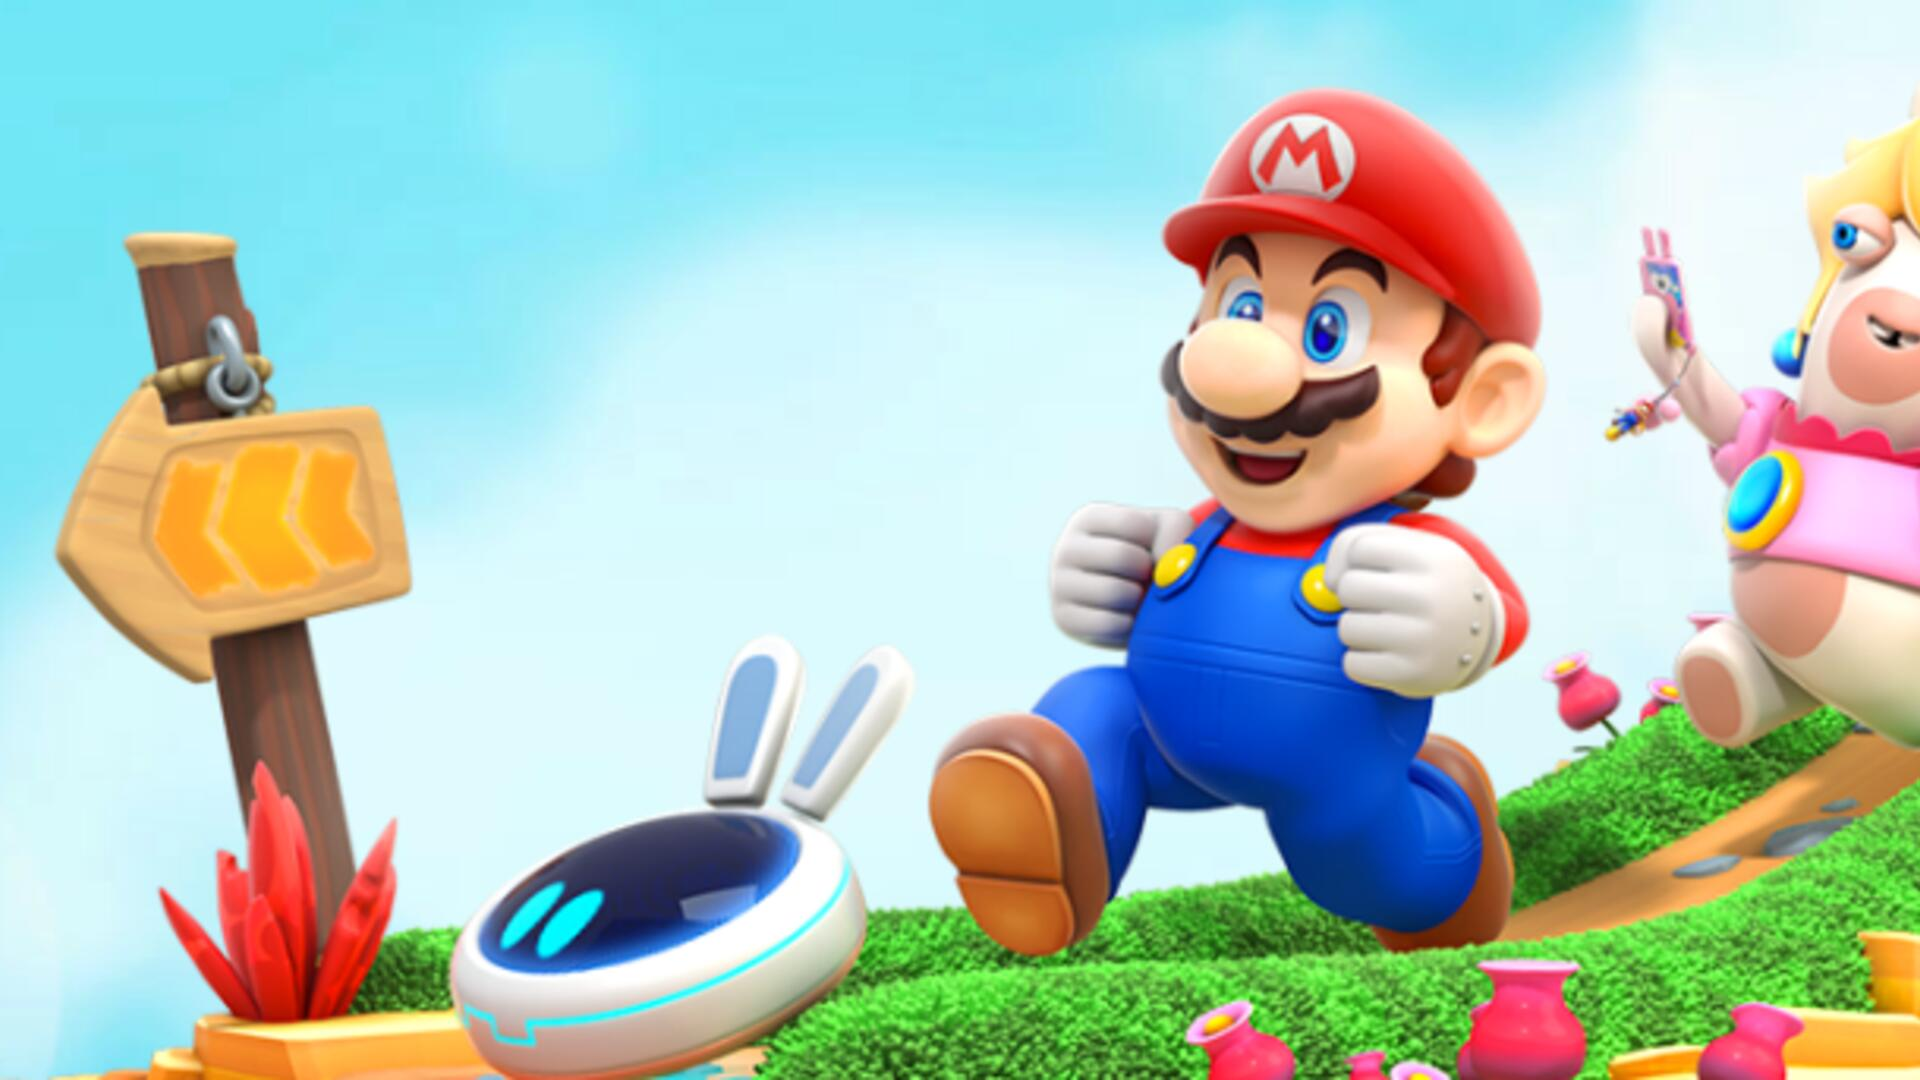 Mario + Rabbids: Kingdom Battle Review: This Combo Was The Right Strategy